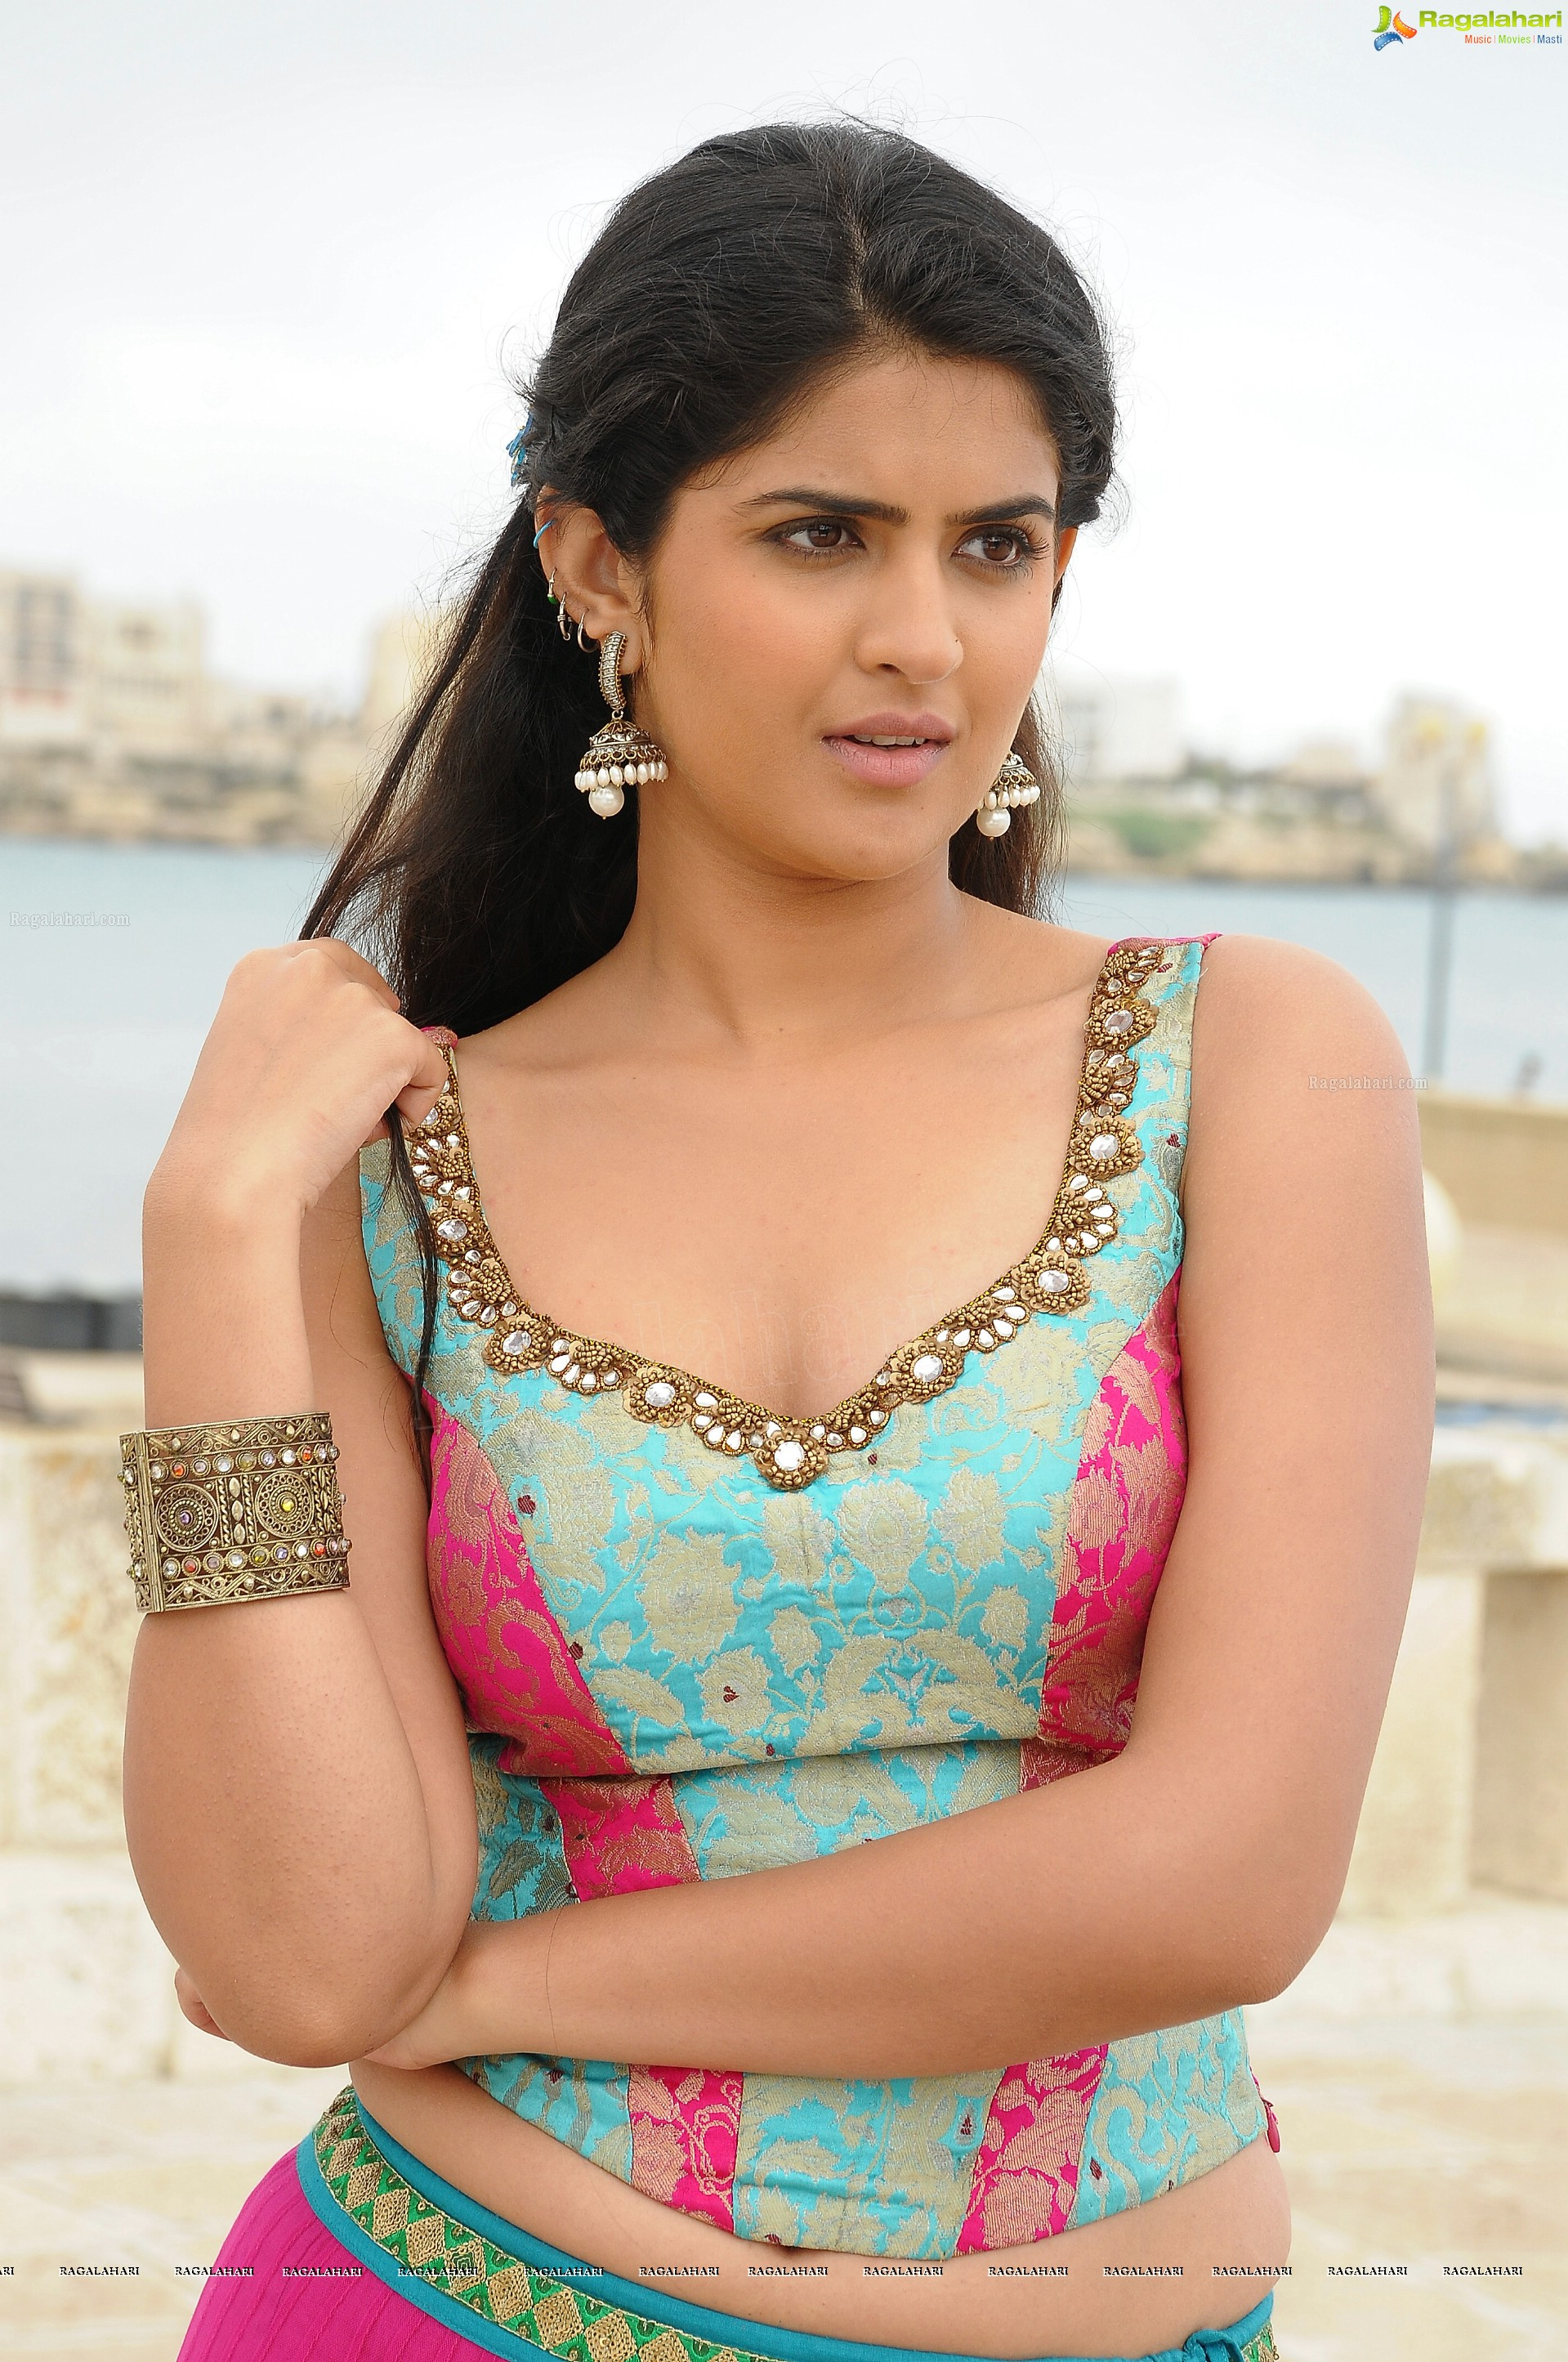 deeksha seth (high definition) image 24 | telugu actress photos